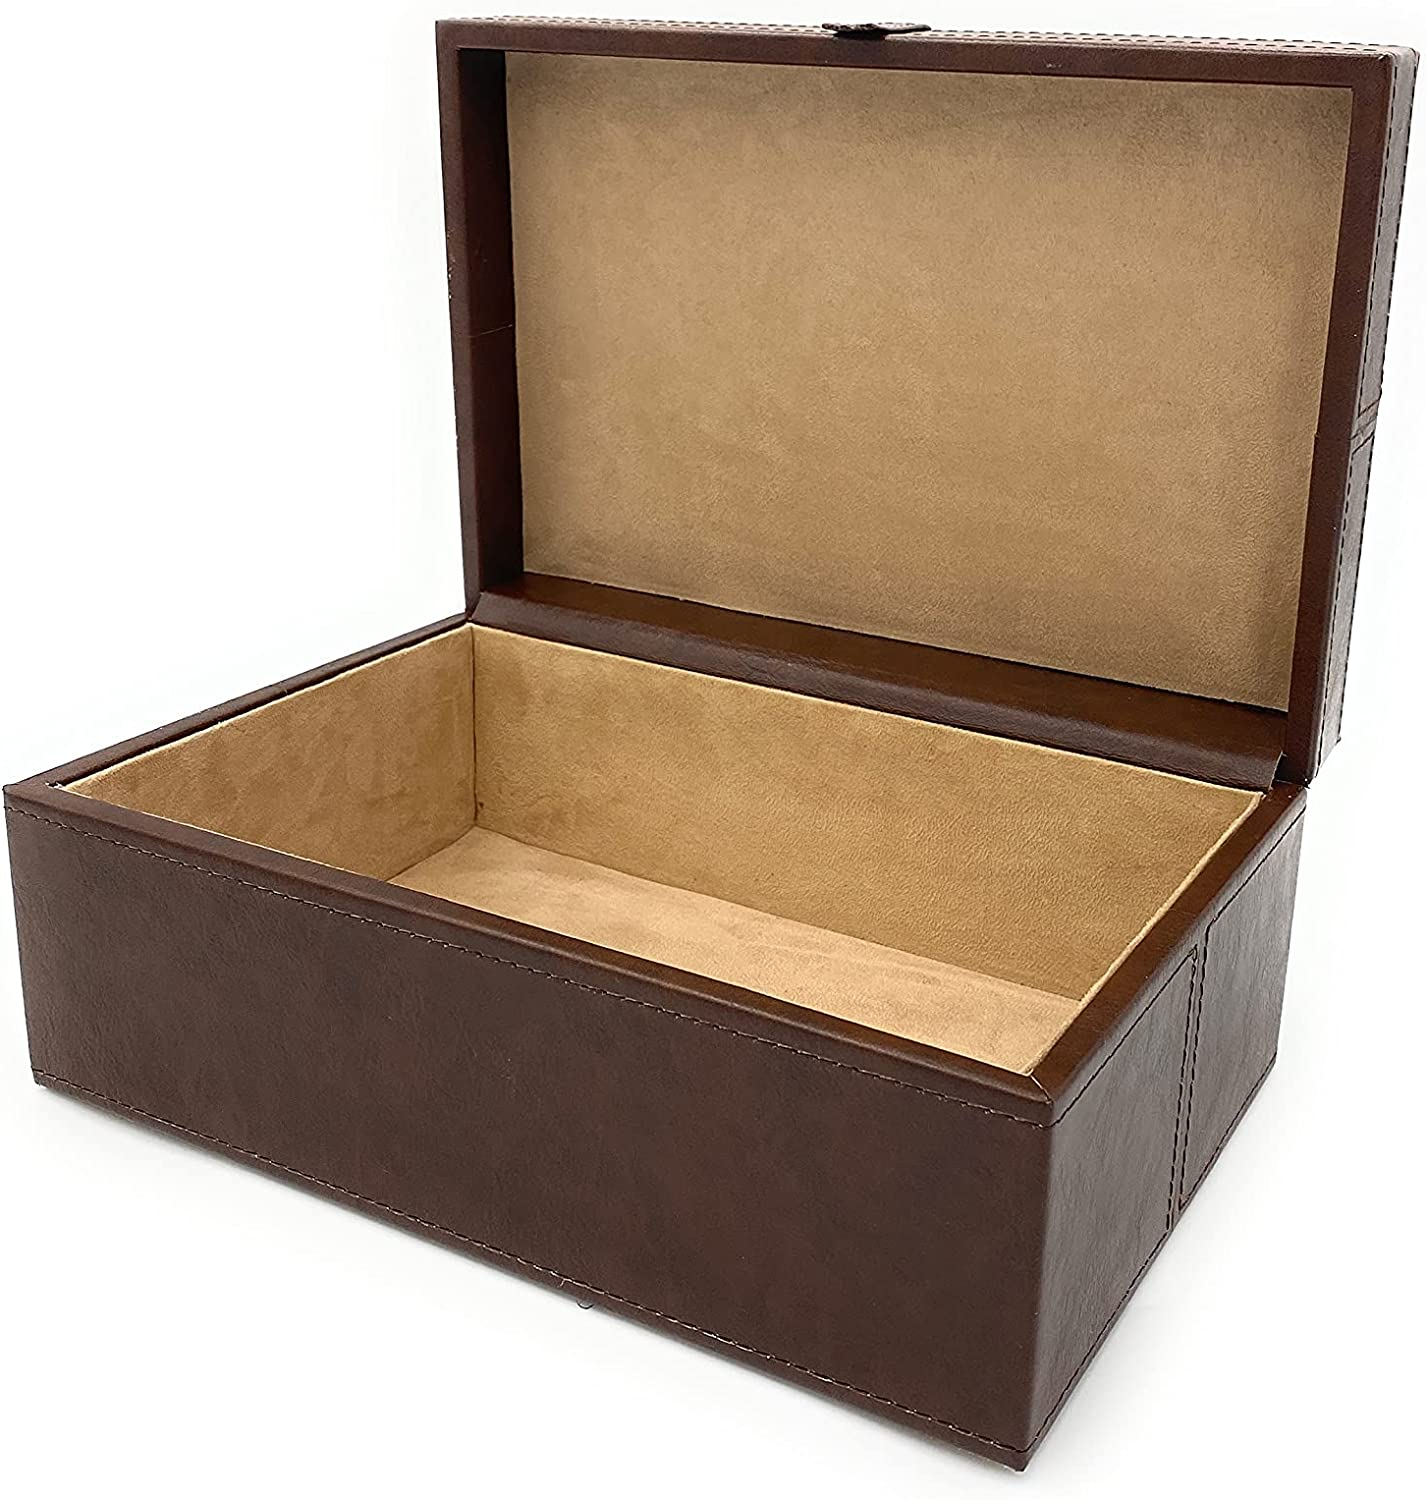 Leather box with lid Large Faux de Brown Stitching Max 50% OFF San Francisco Mall